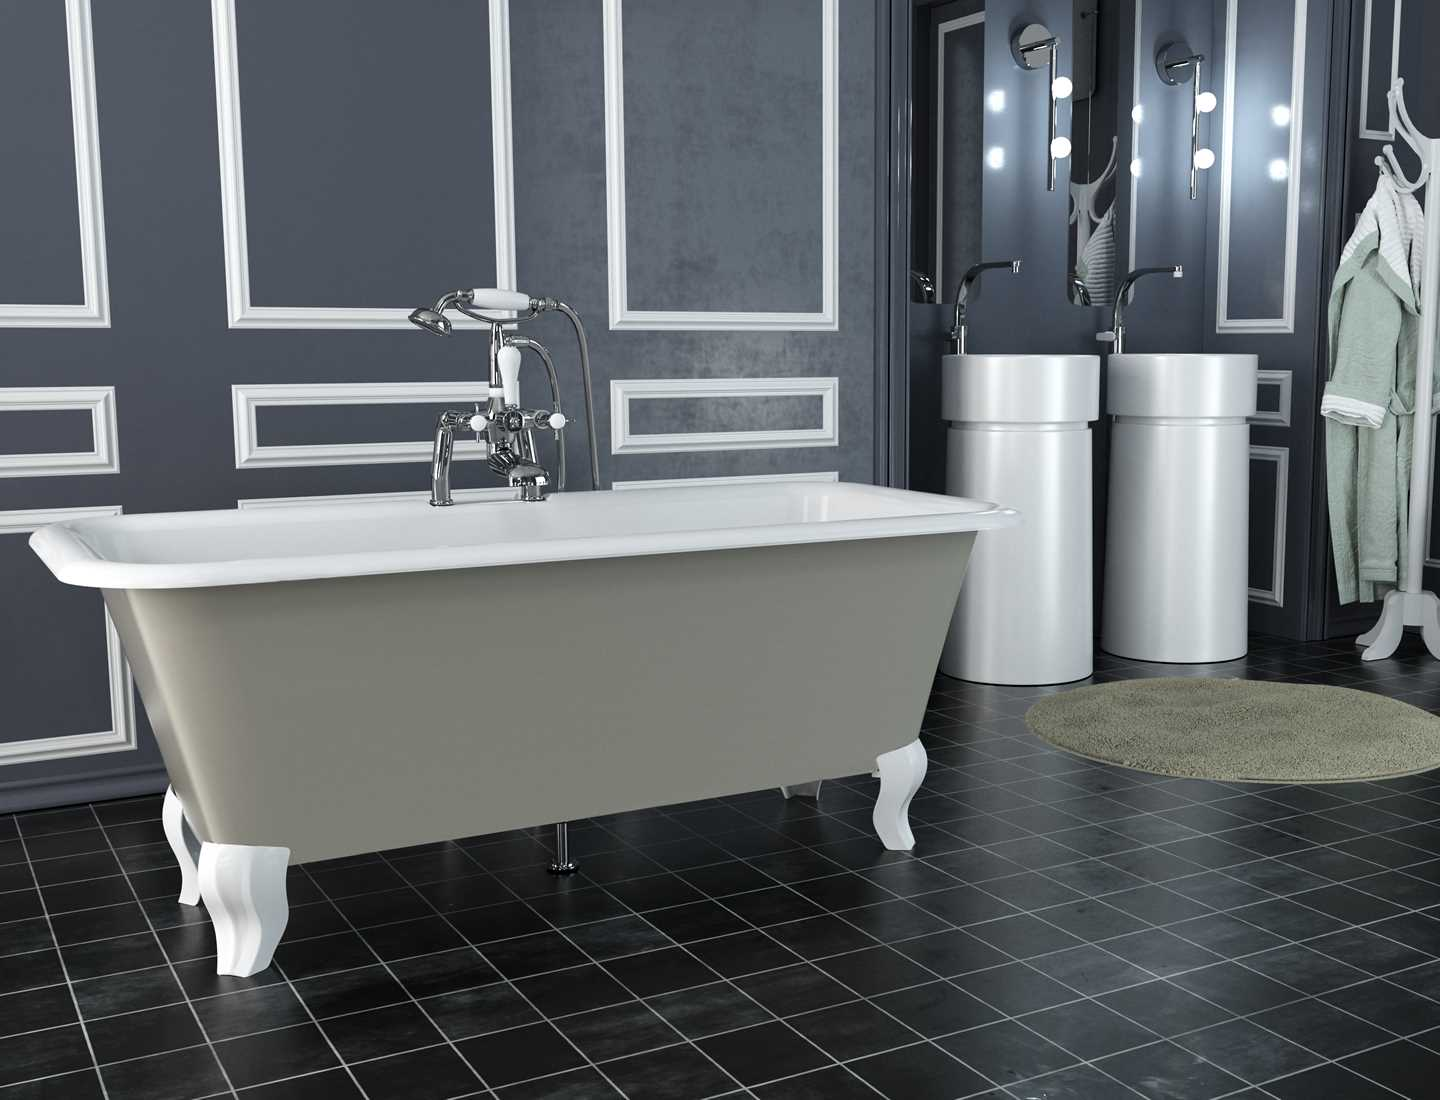 Modena painted cast iron bath with white feet